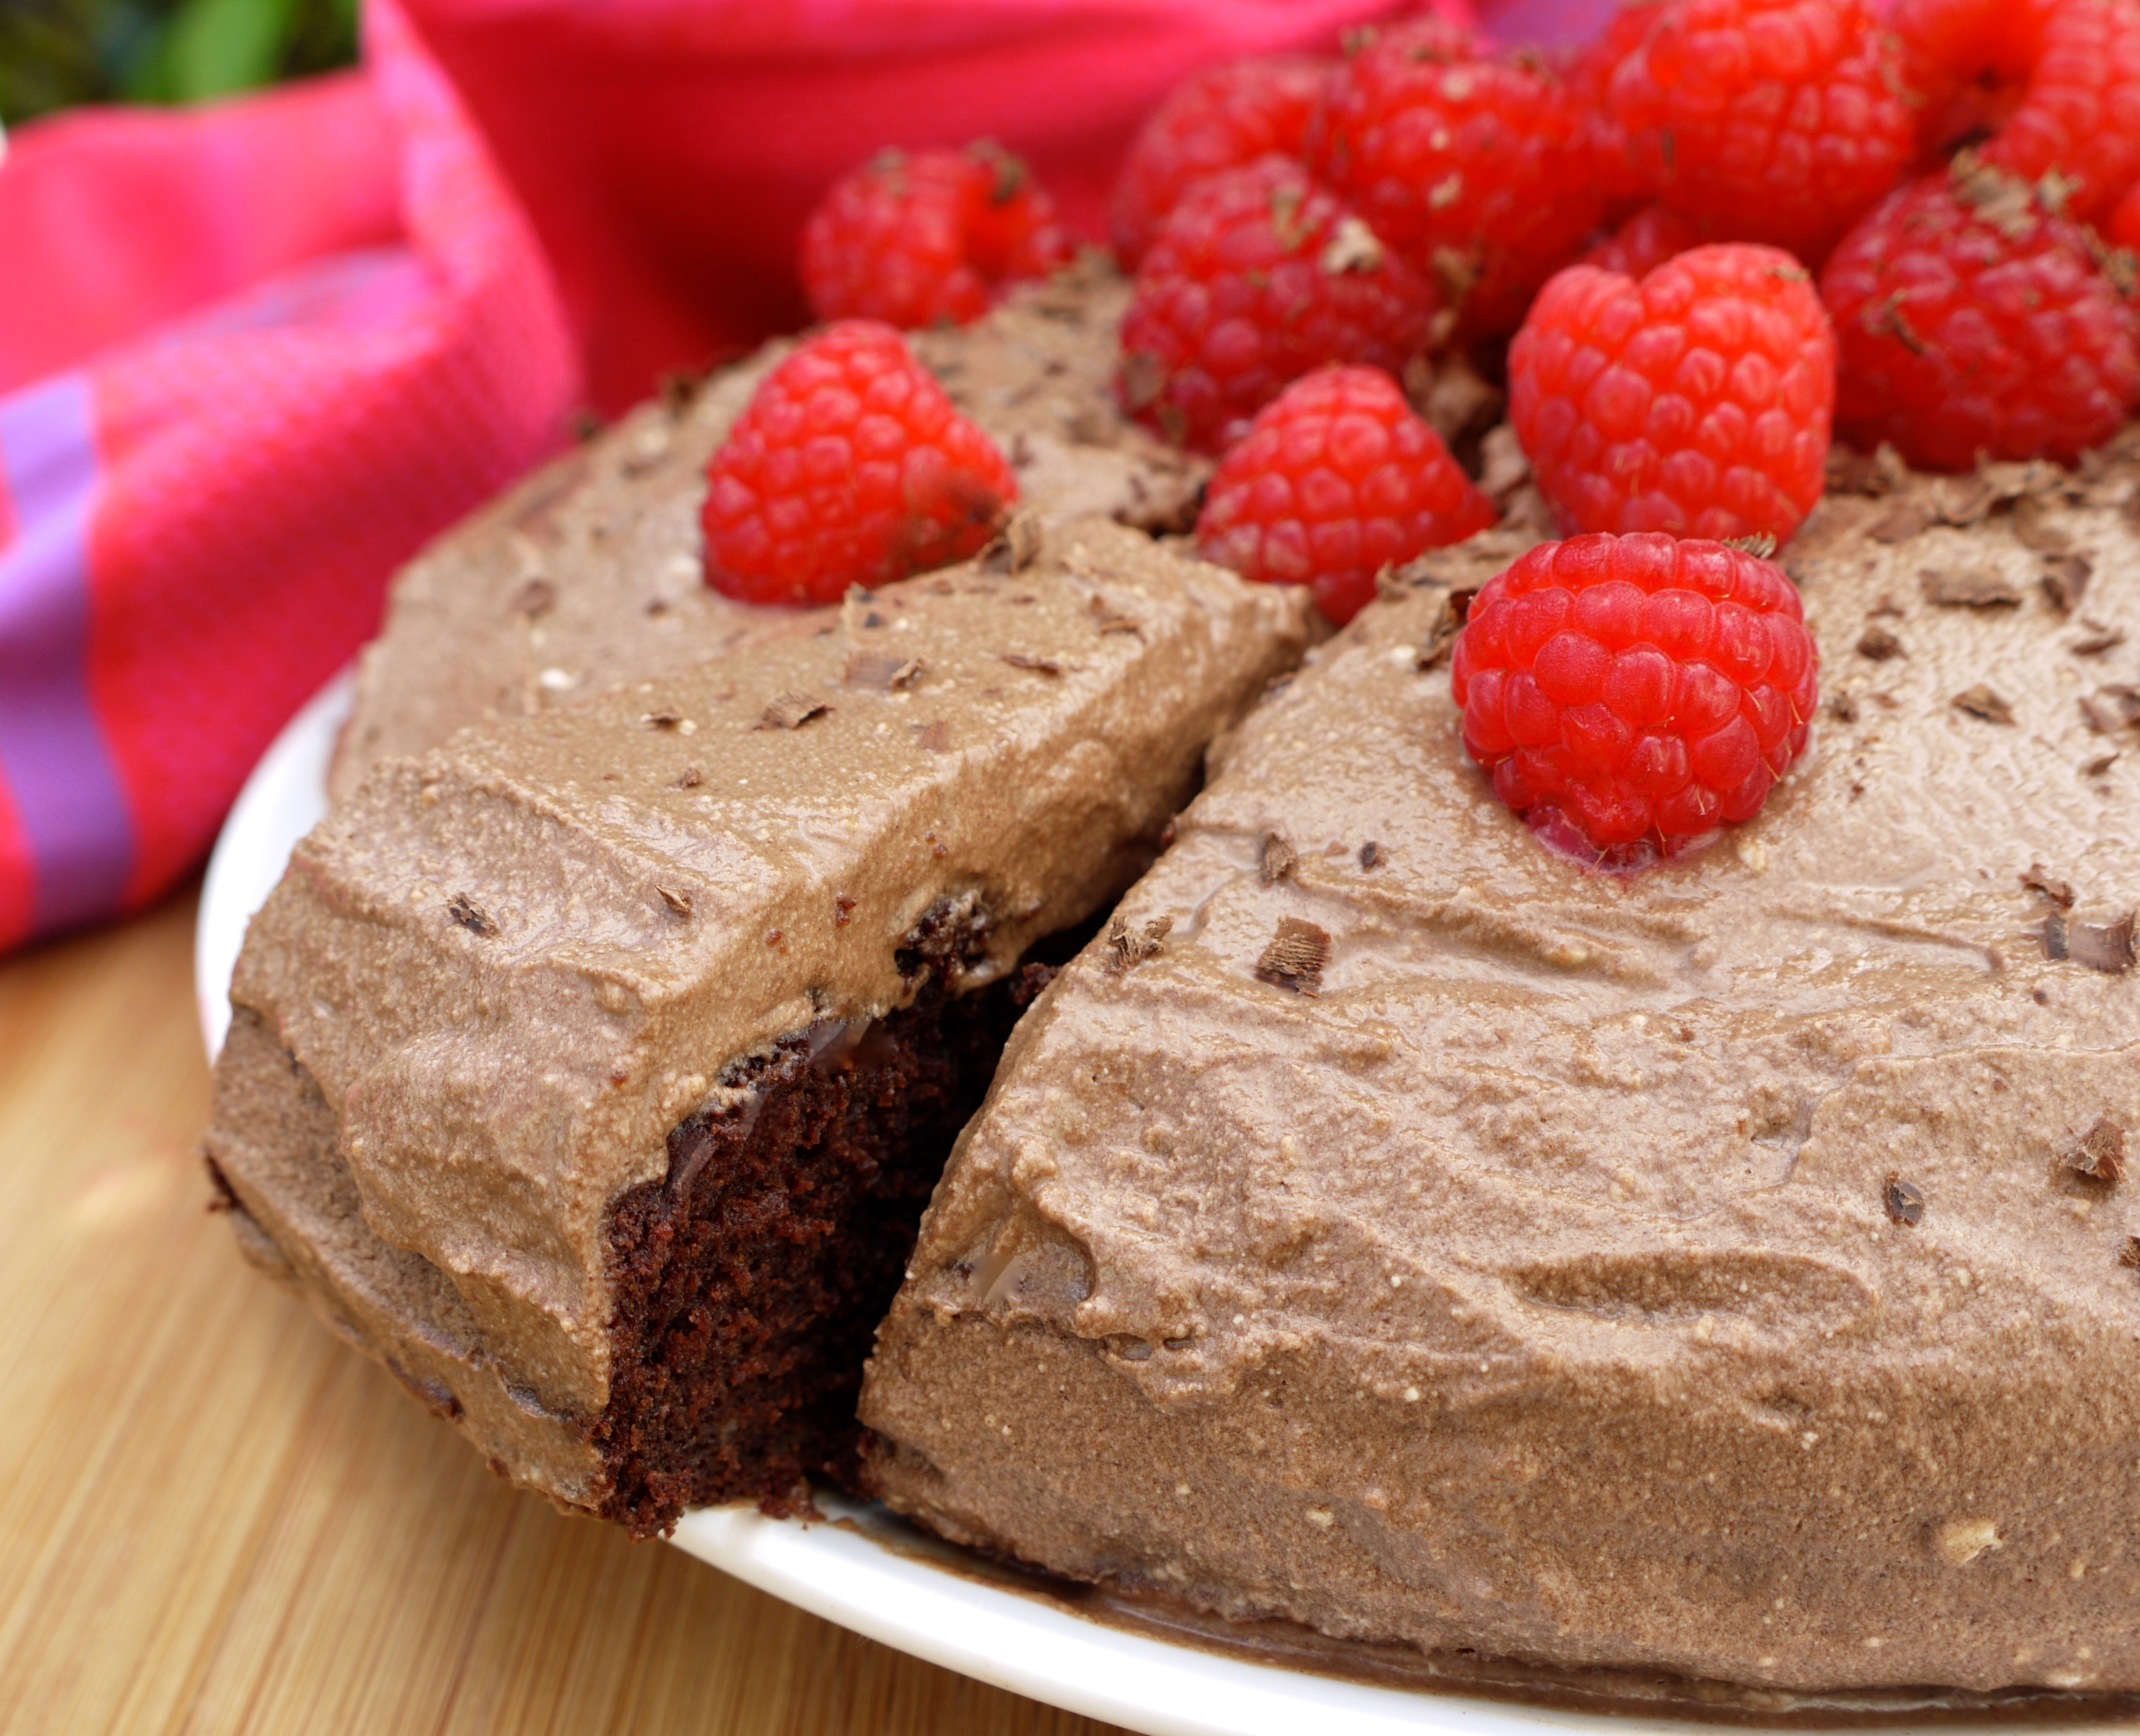 To Keep The Sugar Levels Low In This Cake I Used Dr Coy S Stevia Erylite A Calorie Free Plant Based Sweetener It Can Be Used In Exactly The Same